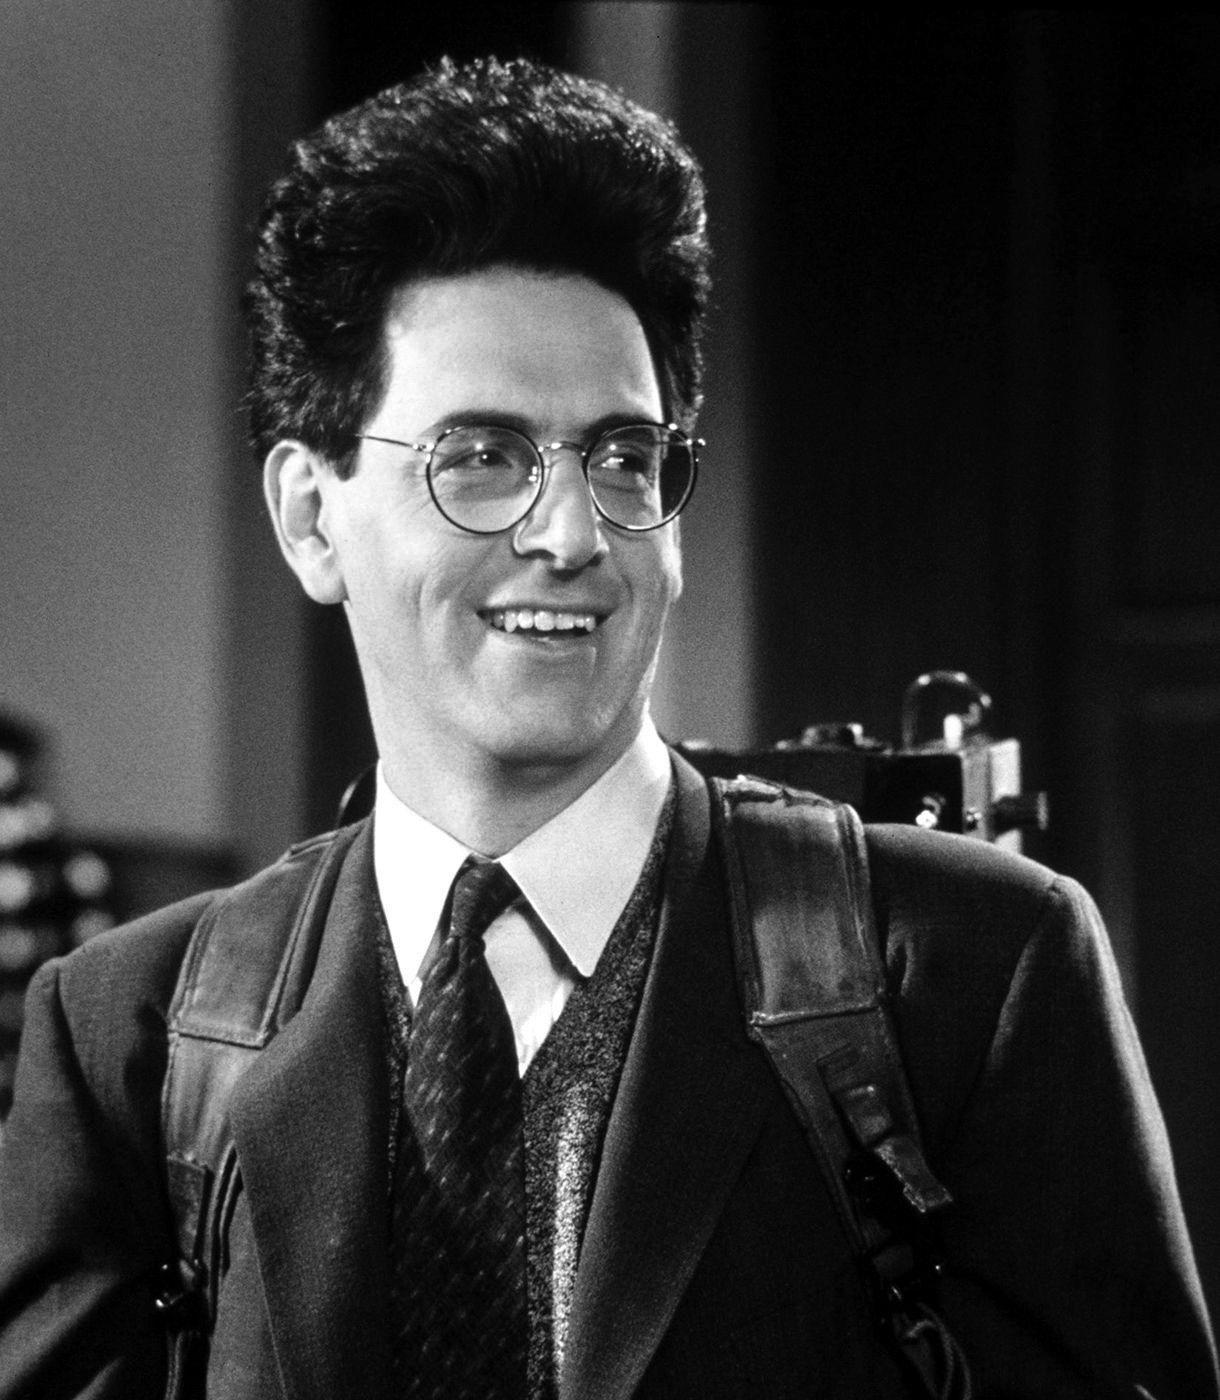 Harold+Ramis+is+quickly+recognized+as+the+quirky+Dr.+Egon+Spengler+in+%E2%80%9CGhostbusters.%E2%80%9D+He+is+also+spotted+as+the+neurologist+in+%E2%80%9CGroundhog+Day.%E2%80%9D+But+his+appearances+in+these+works+are+not+the+reason+the+Chicago+native+is+being+honored+with+the+first-ever+film+tribute+at+Ebertfest.